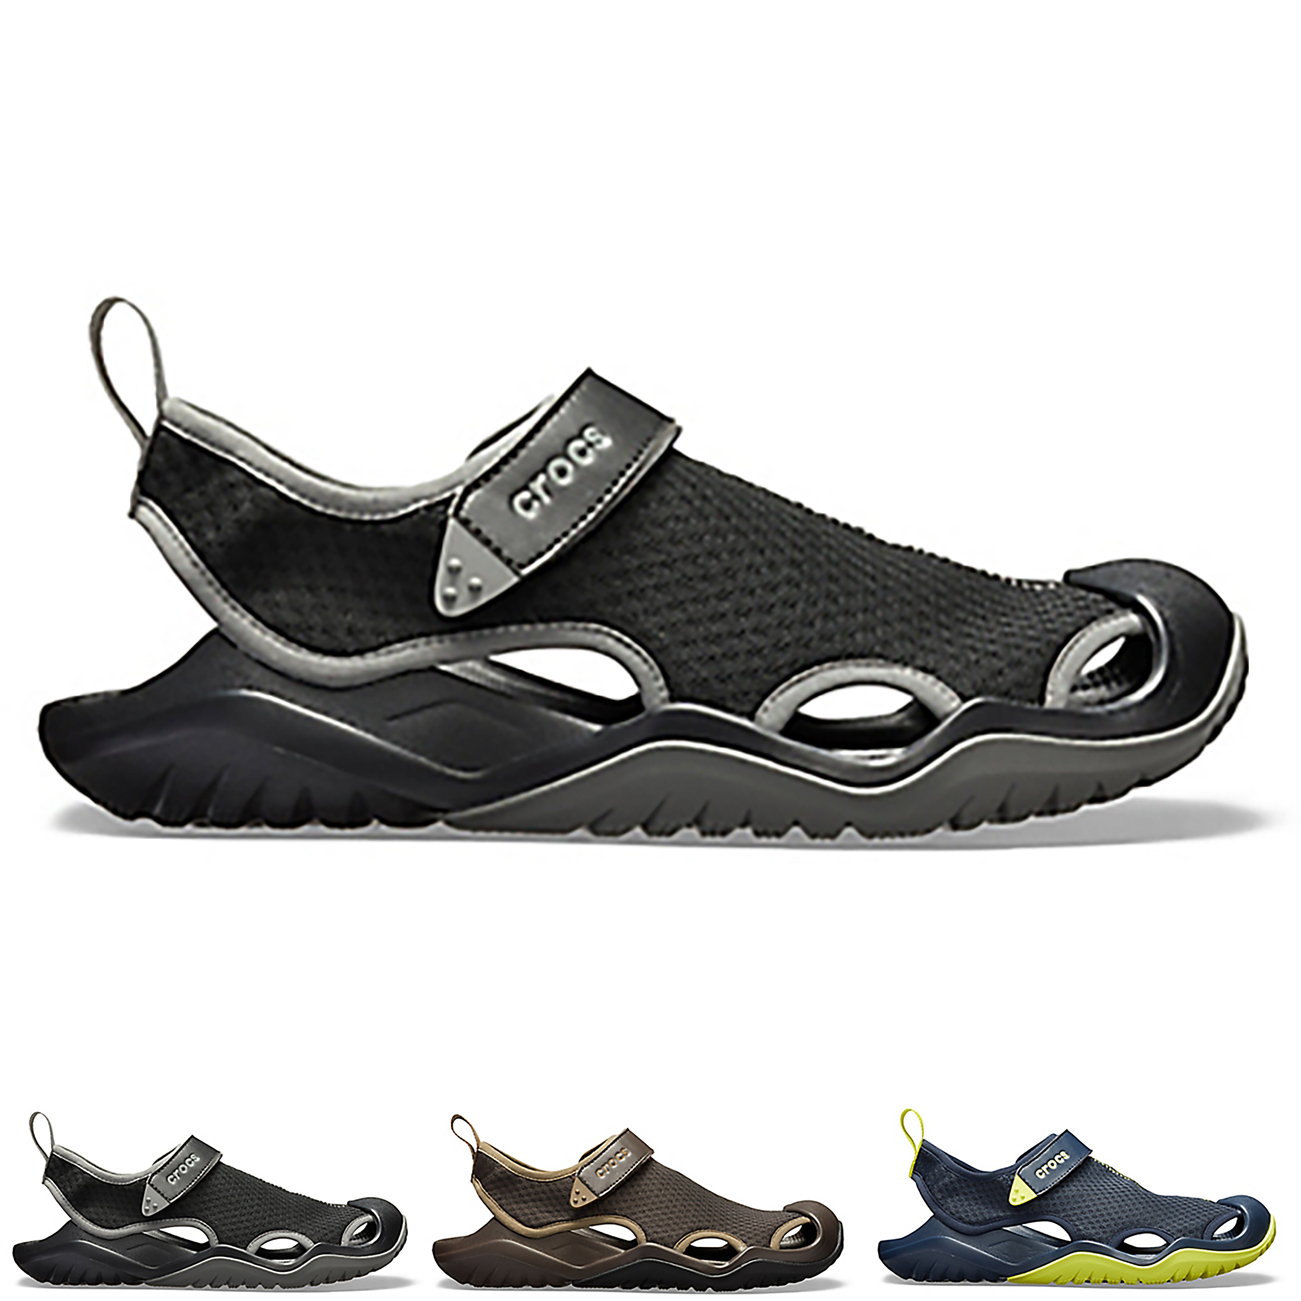 3618cc0cc909c Image is loading Mens-Crocs-Swiftwater-Mesh-Deck-Lightweight-Water-Friendly-